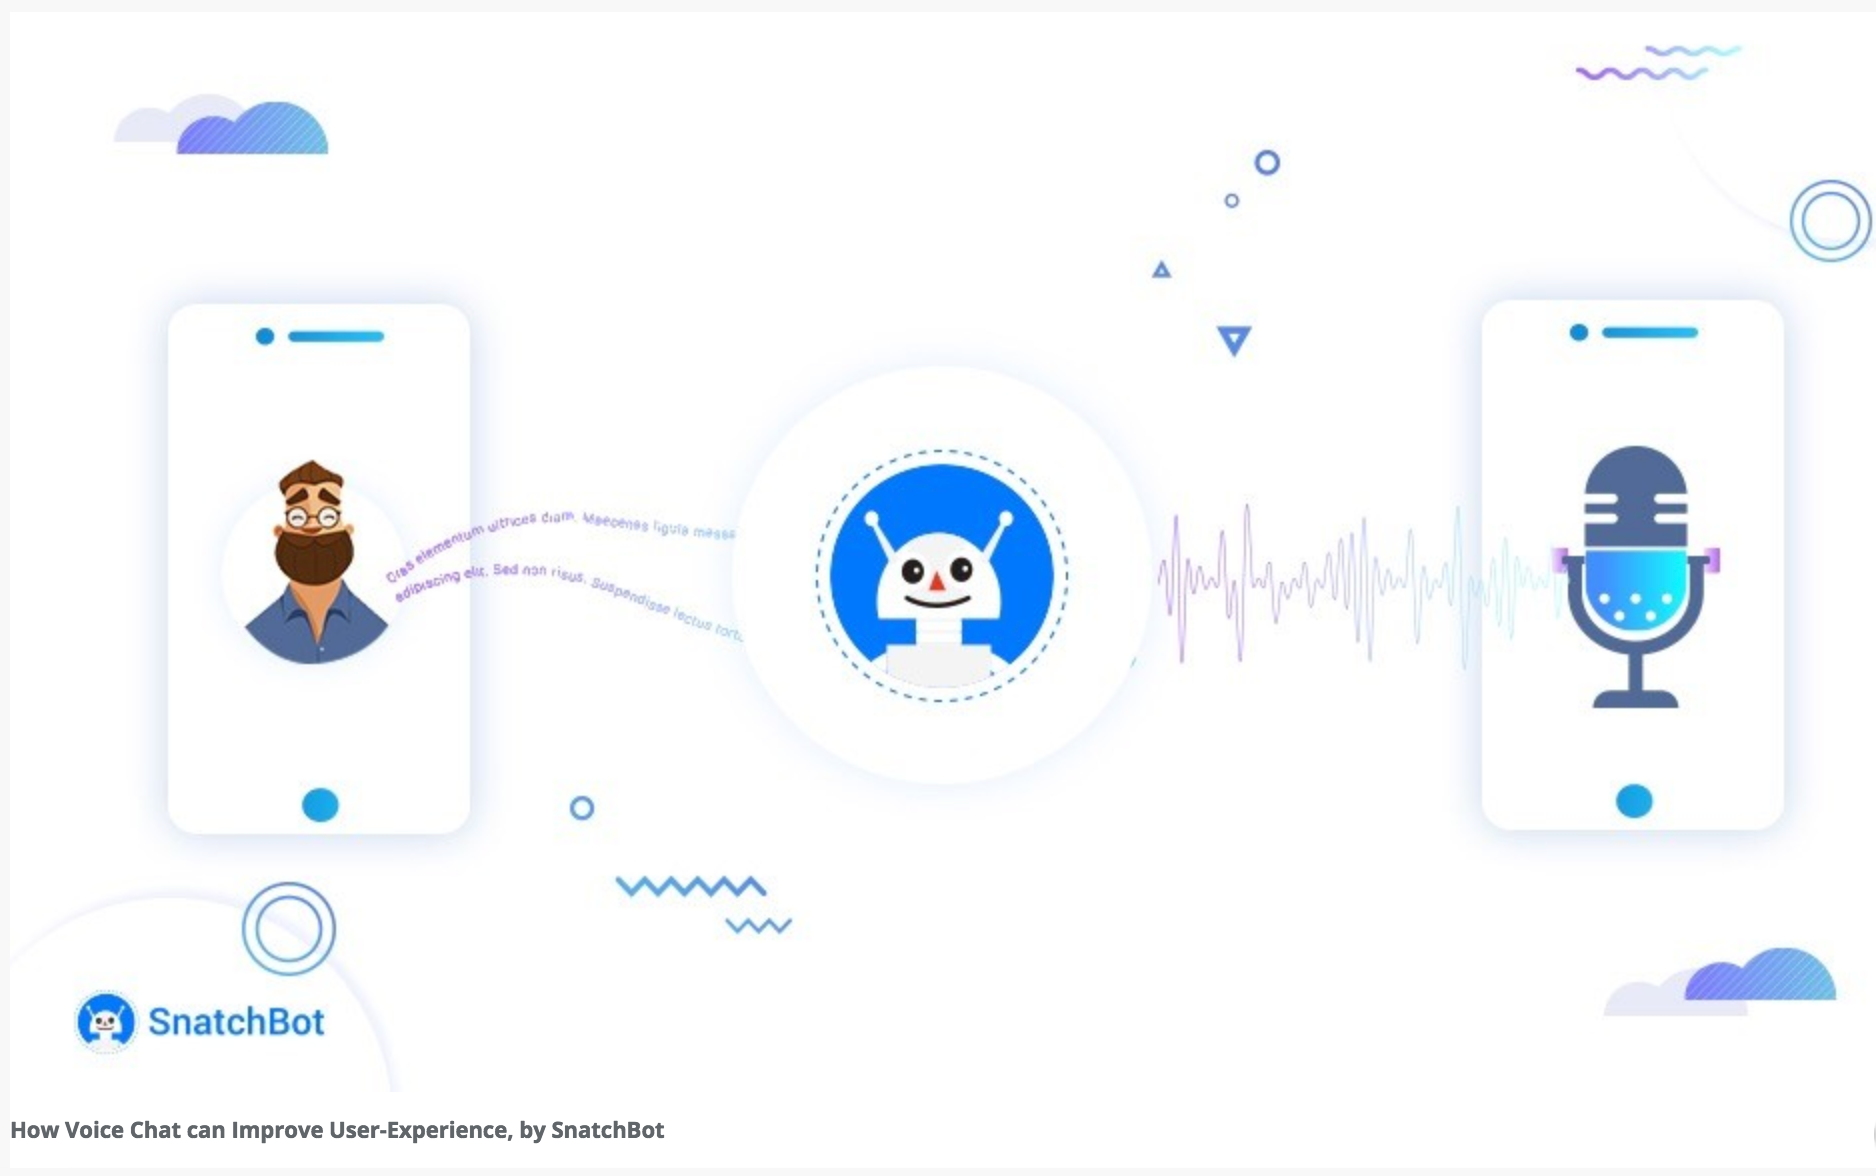 How Voice Chat can Improve User Experience